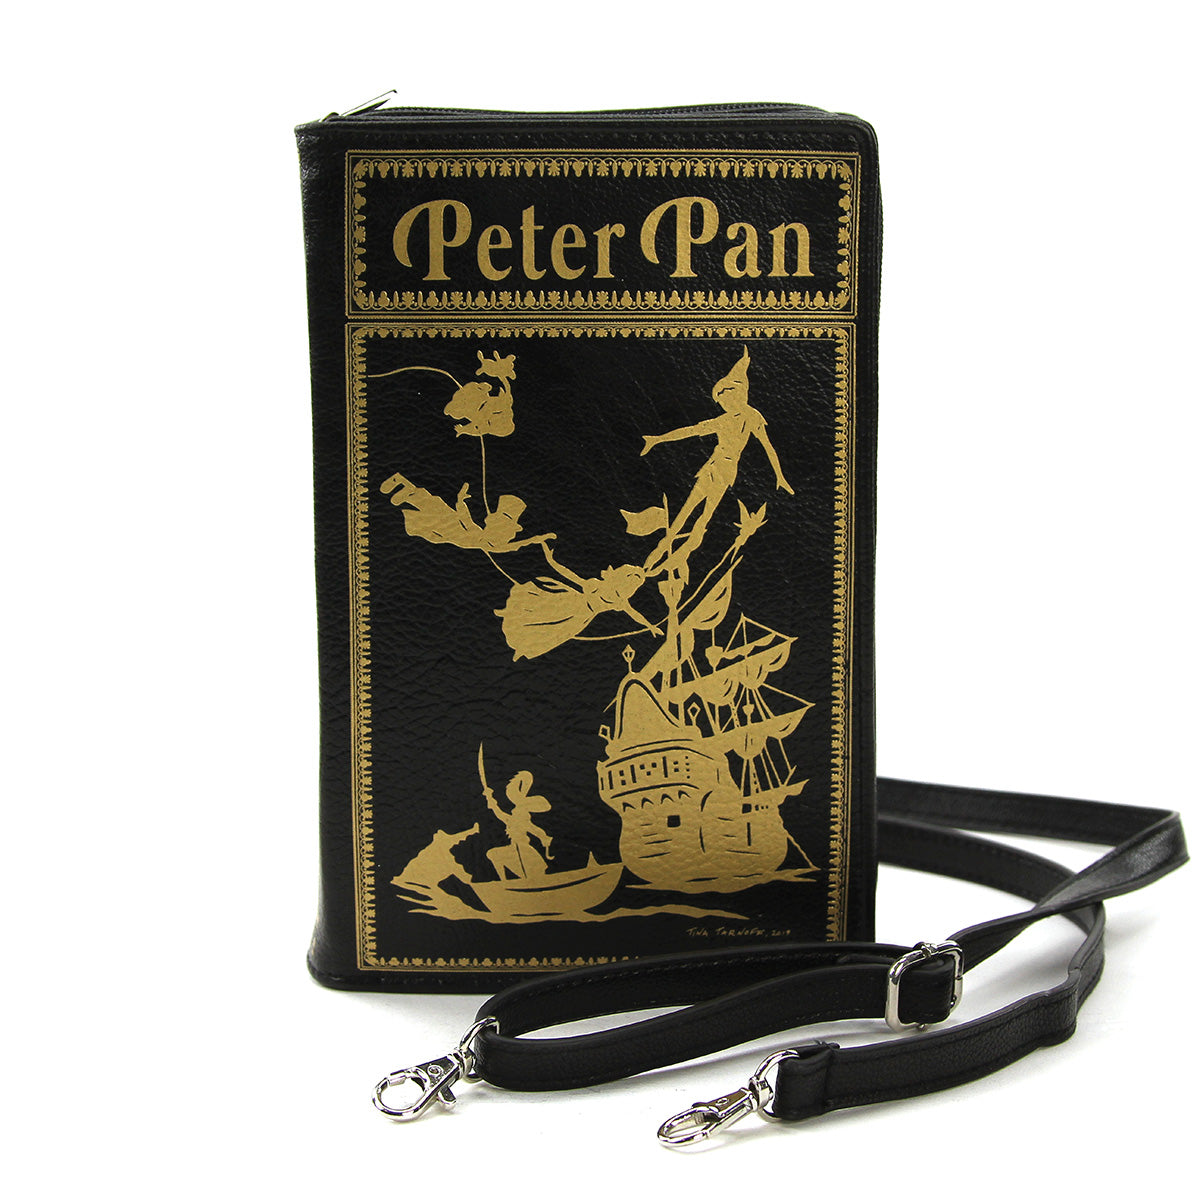 Peter Pan Book Clutch Bag in Vinyl Material front view